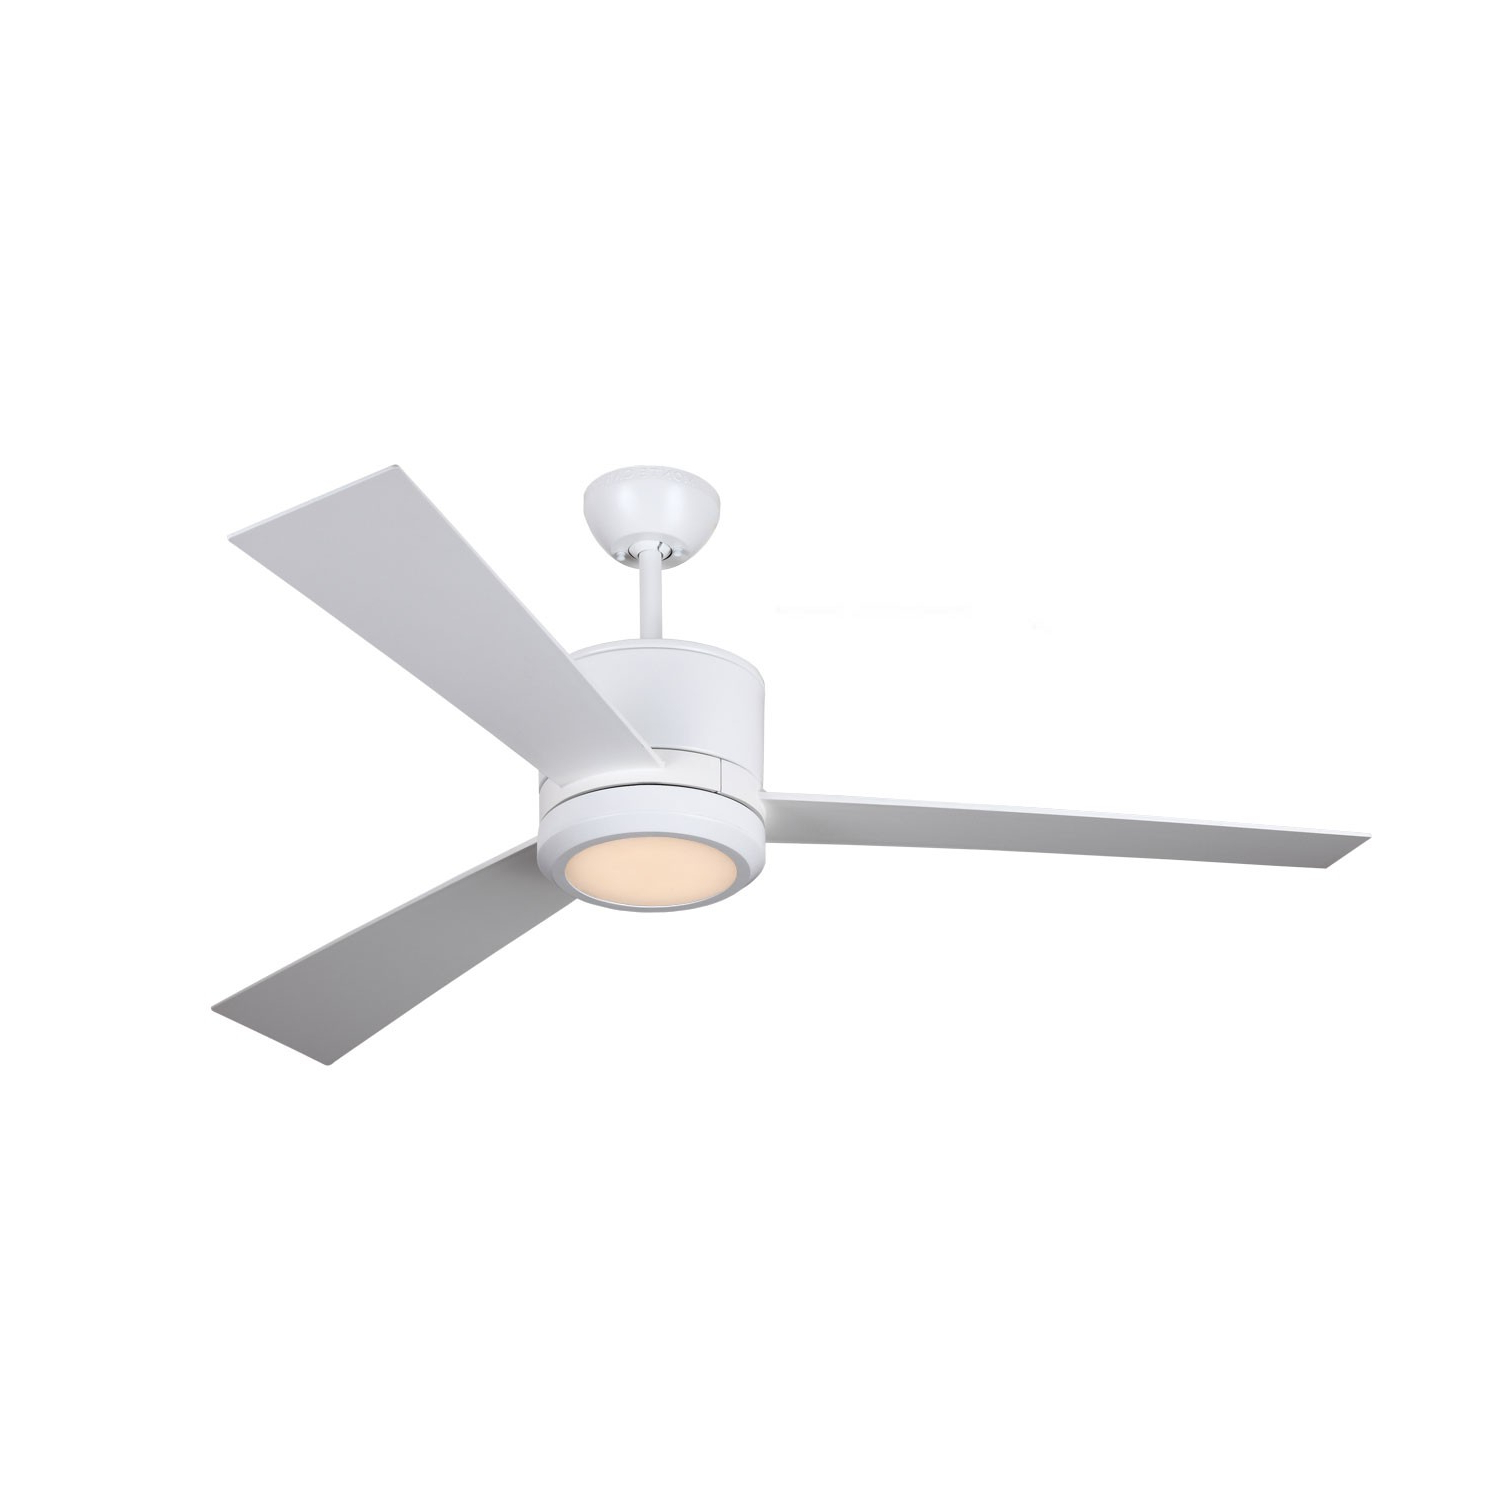 Morton 3 Blade Ceiling Fans For 2019 Ceiling: Modern Home Furniture Idea With Monte Carlo Ceiling (View 13 of 20)